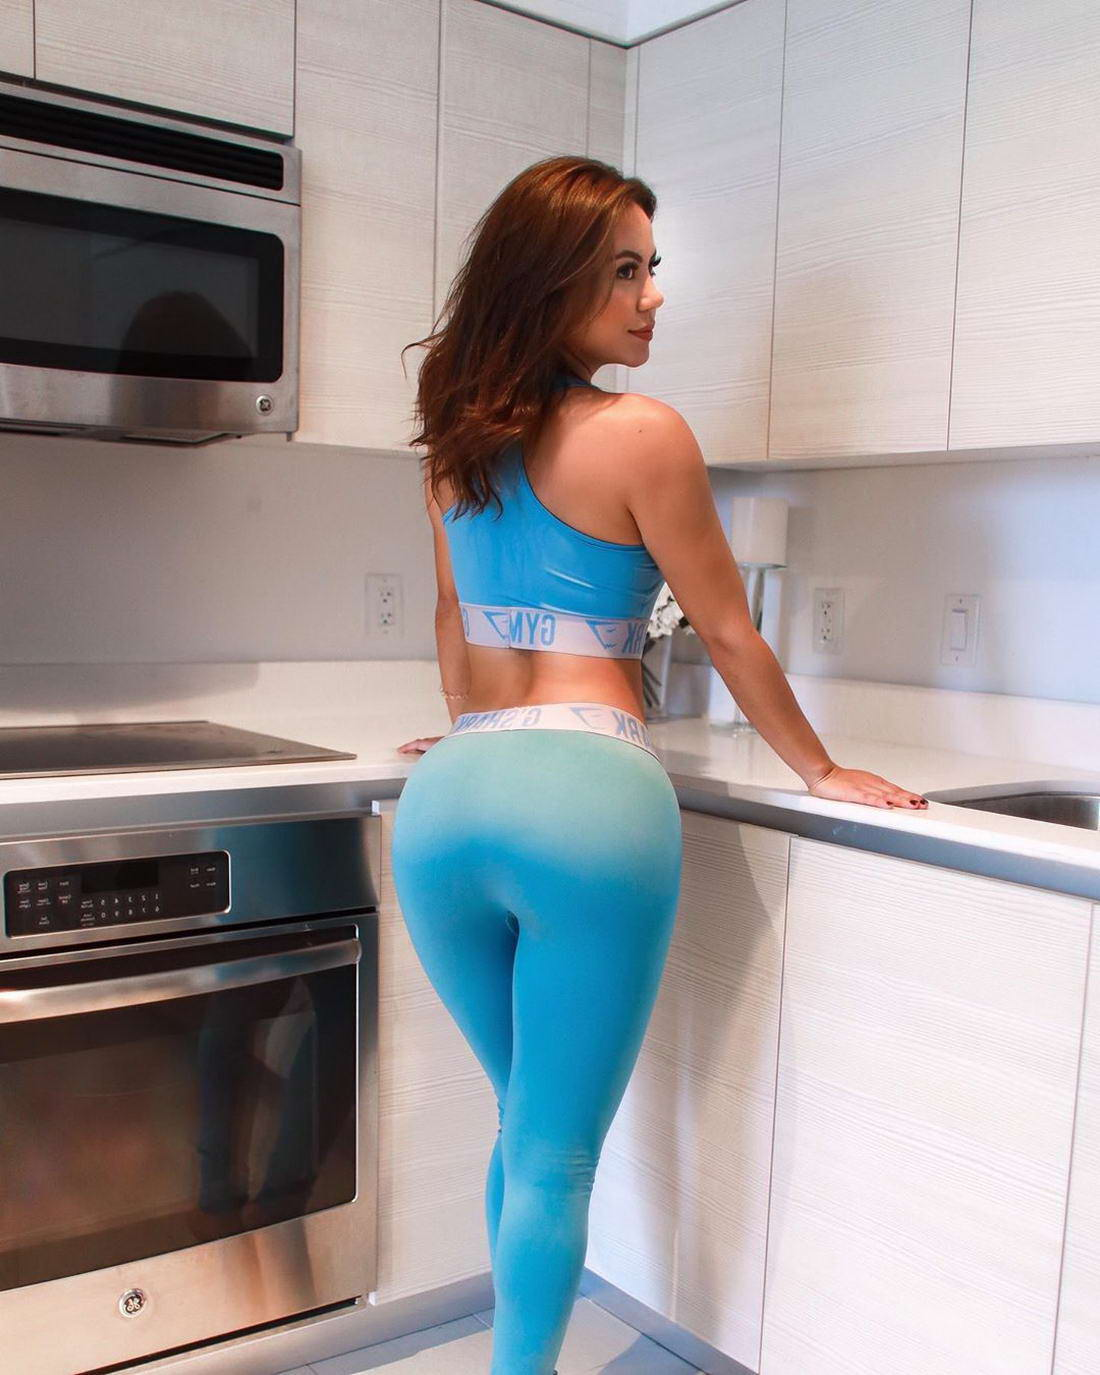 Hot Girls In Yoga Pants (42 Photos) - Page 3 of 4 - The